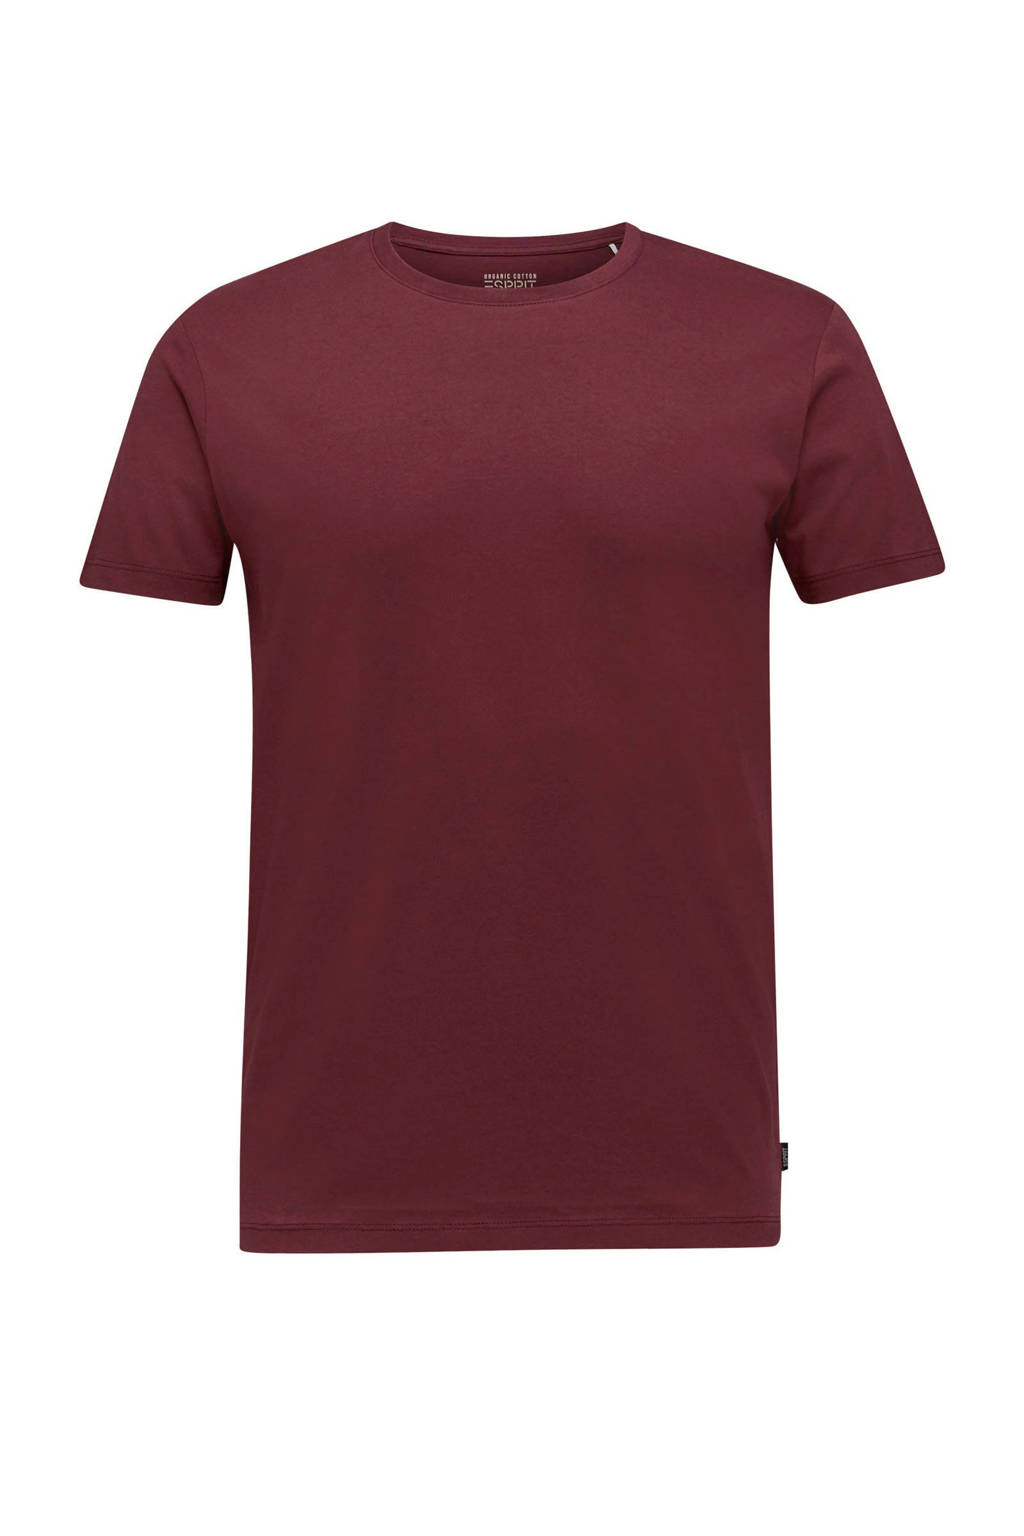 ESPRIT Men Casual T-shirt bordeaux rood, Bordeaux rood